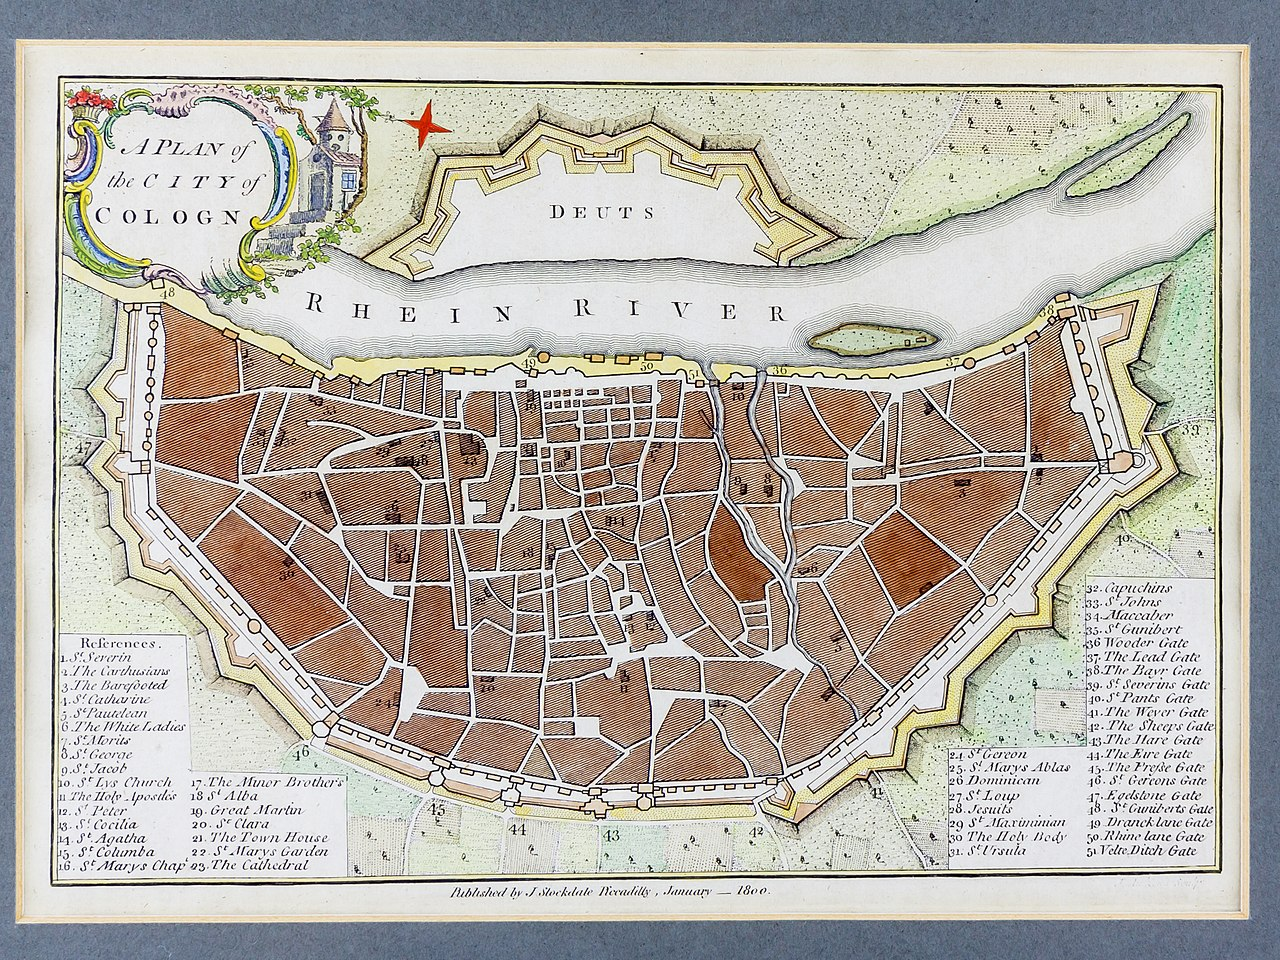 File A Plan Of The City Of Cologne 1800 John Stockdale